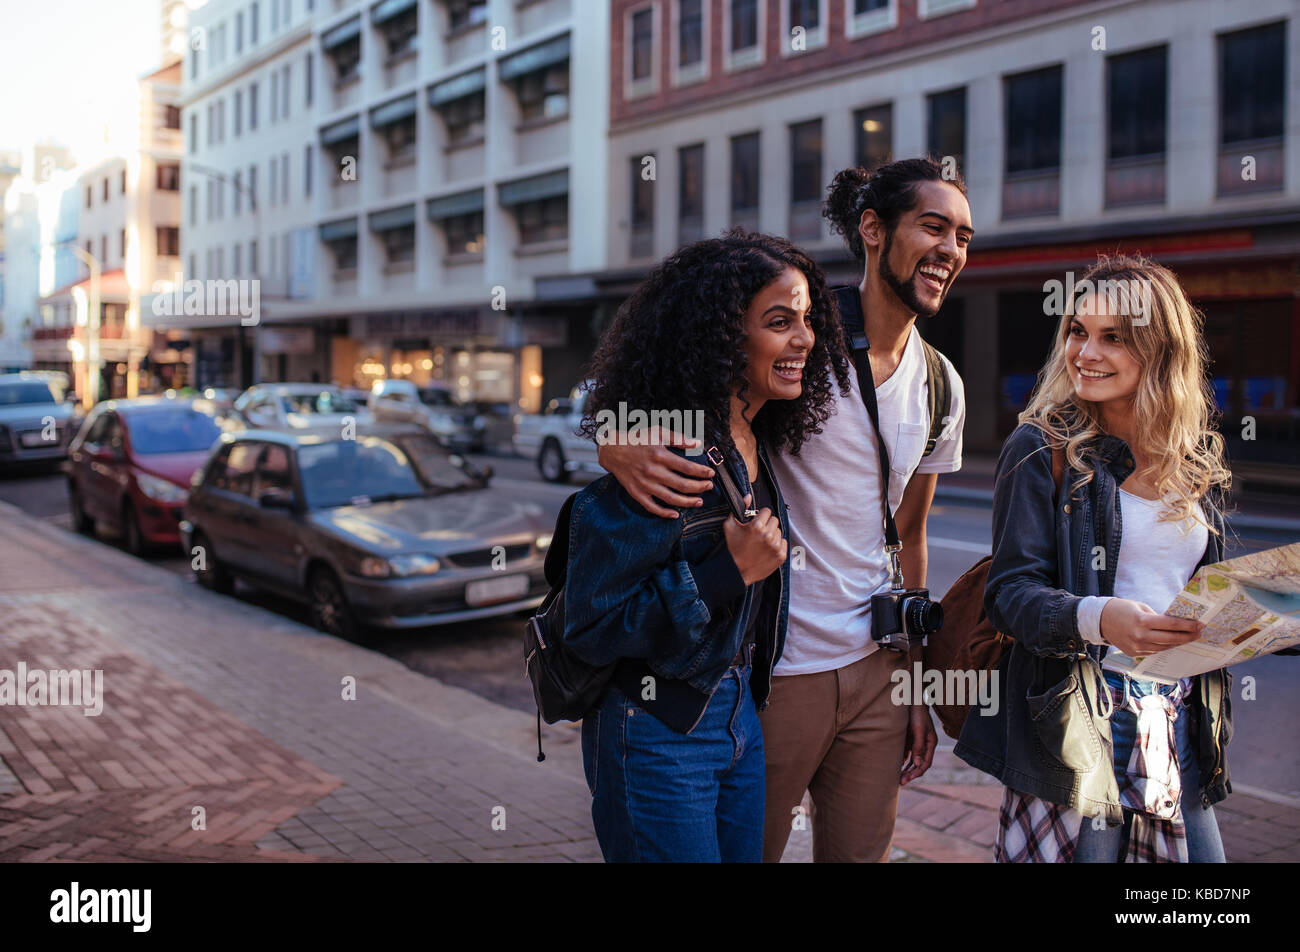 Woman tourist using navigation map to explore the city. Man with two women friends moving around the city. - Stock Image